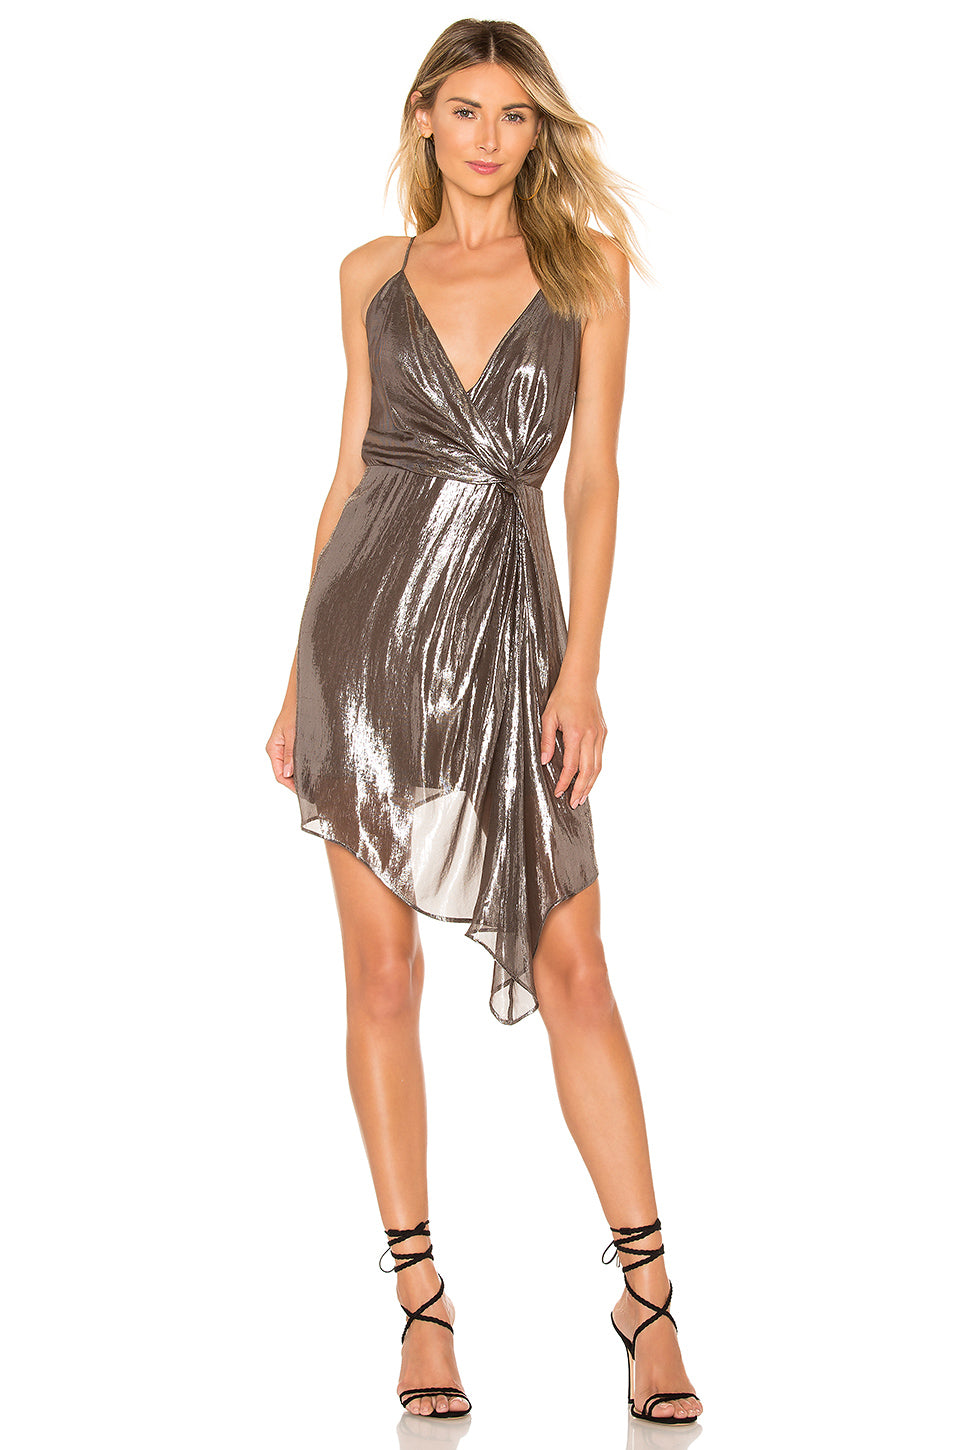 CAMI NYC Lame Dress